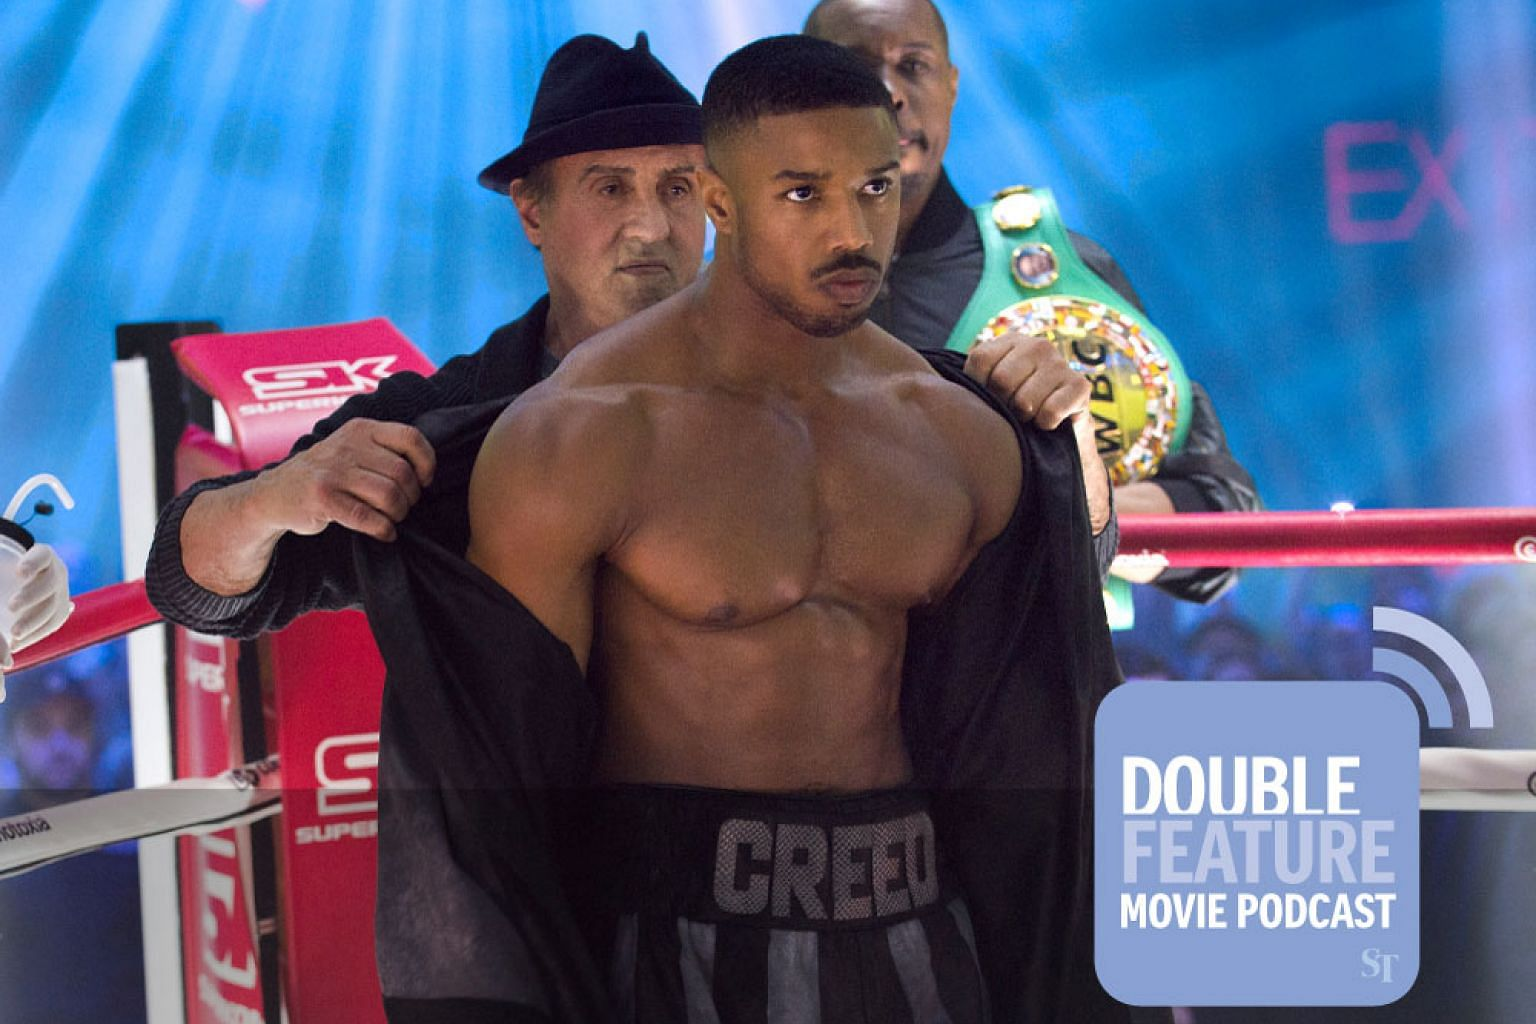 Sylvester Stallone as Rocky Balboa and Michael B Jordan as Adonis Creed in Creed II, creed 2 podcast